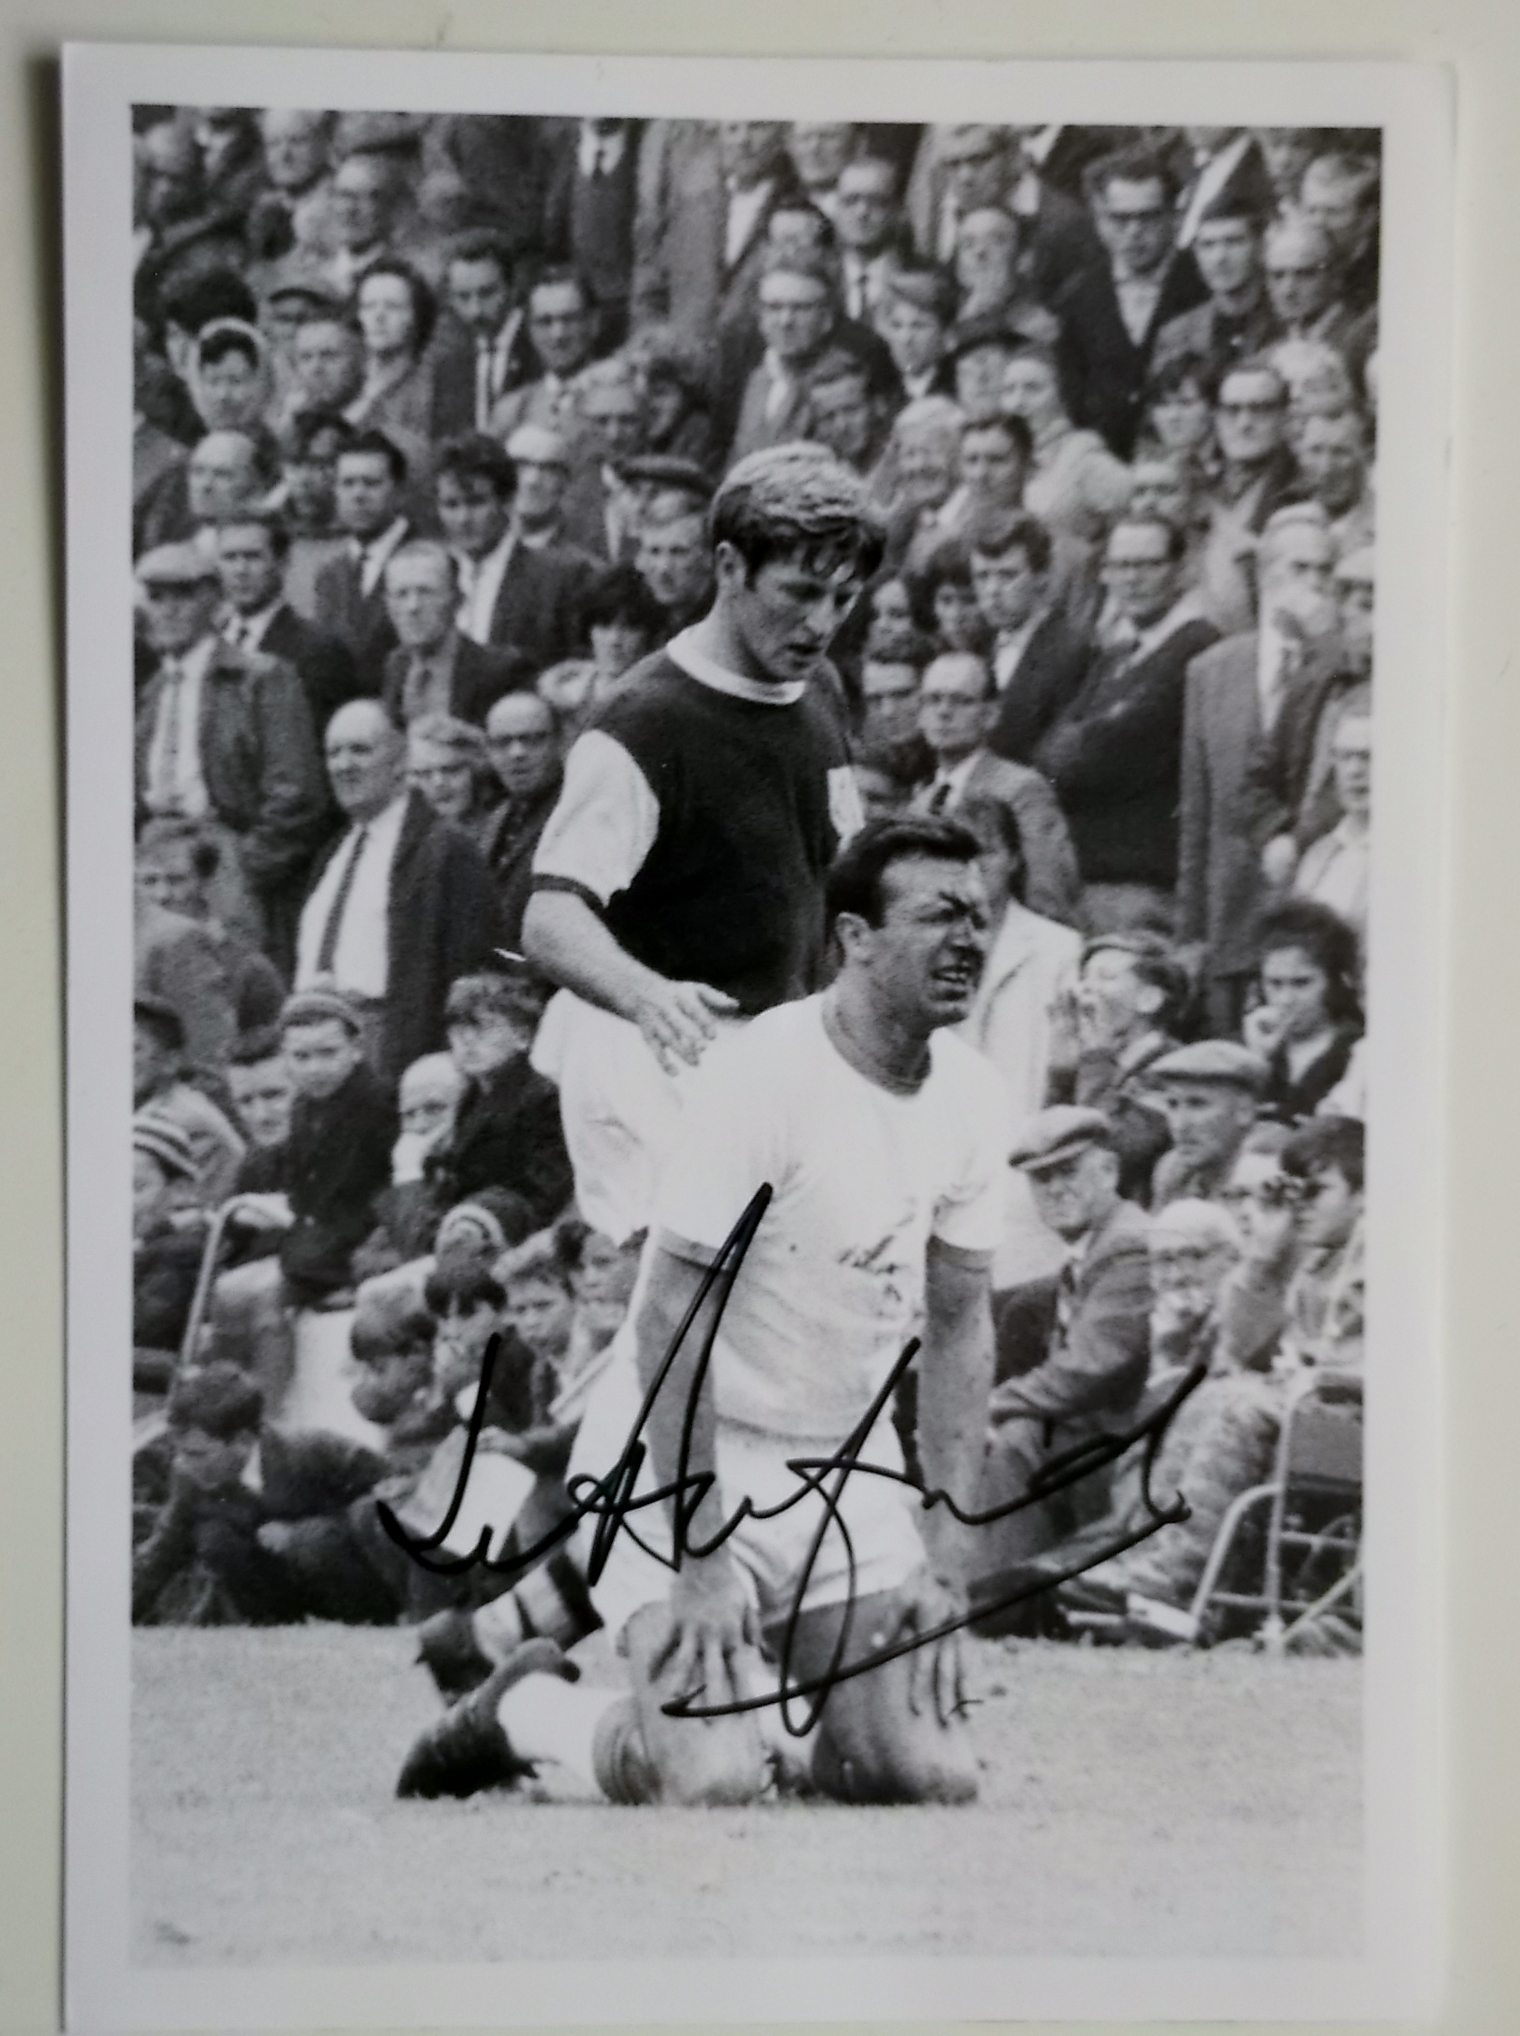 Lot 691 - BLACKPOOL V BURNLEY PHOTOGRAPH SIGNED BY JIMMY ARMFIELD